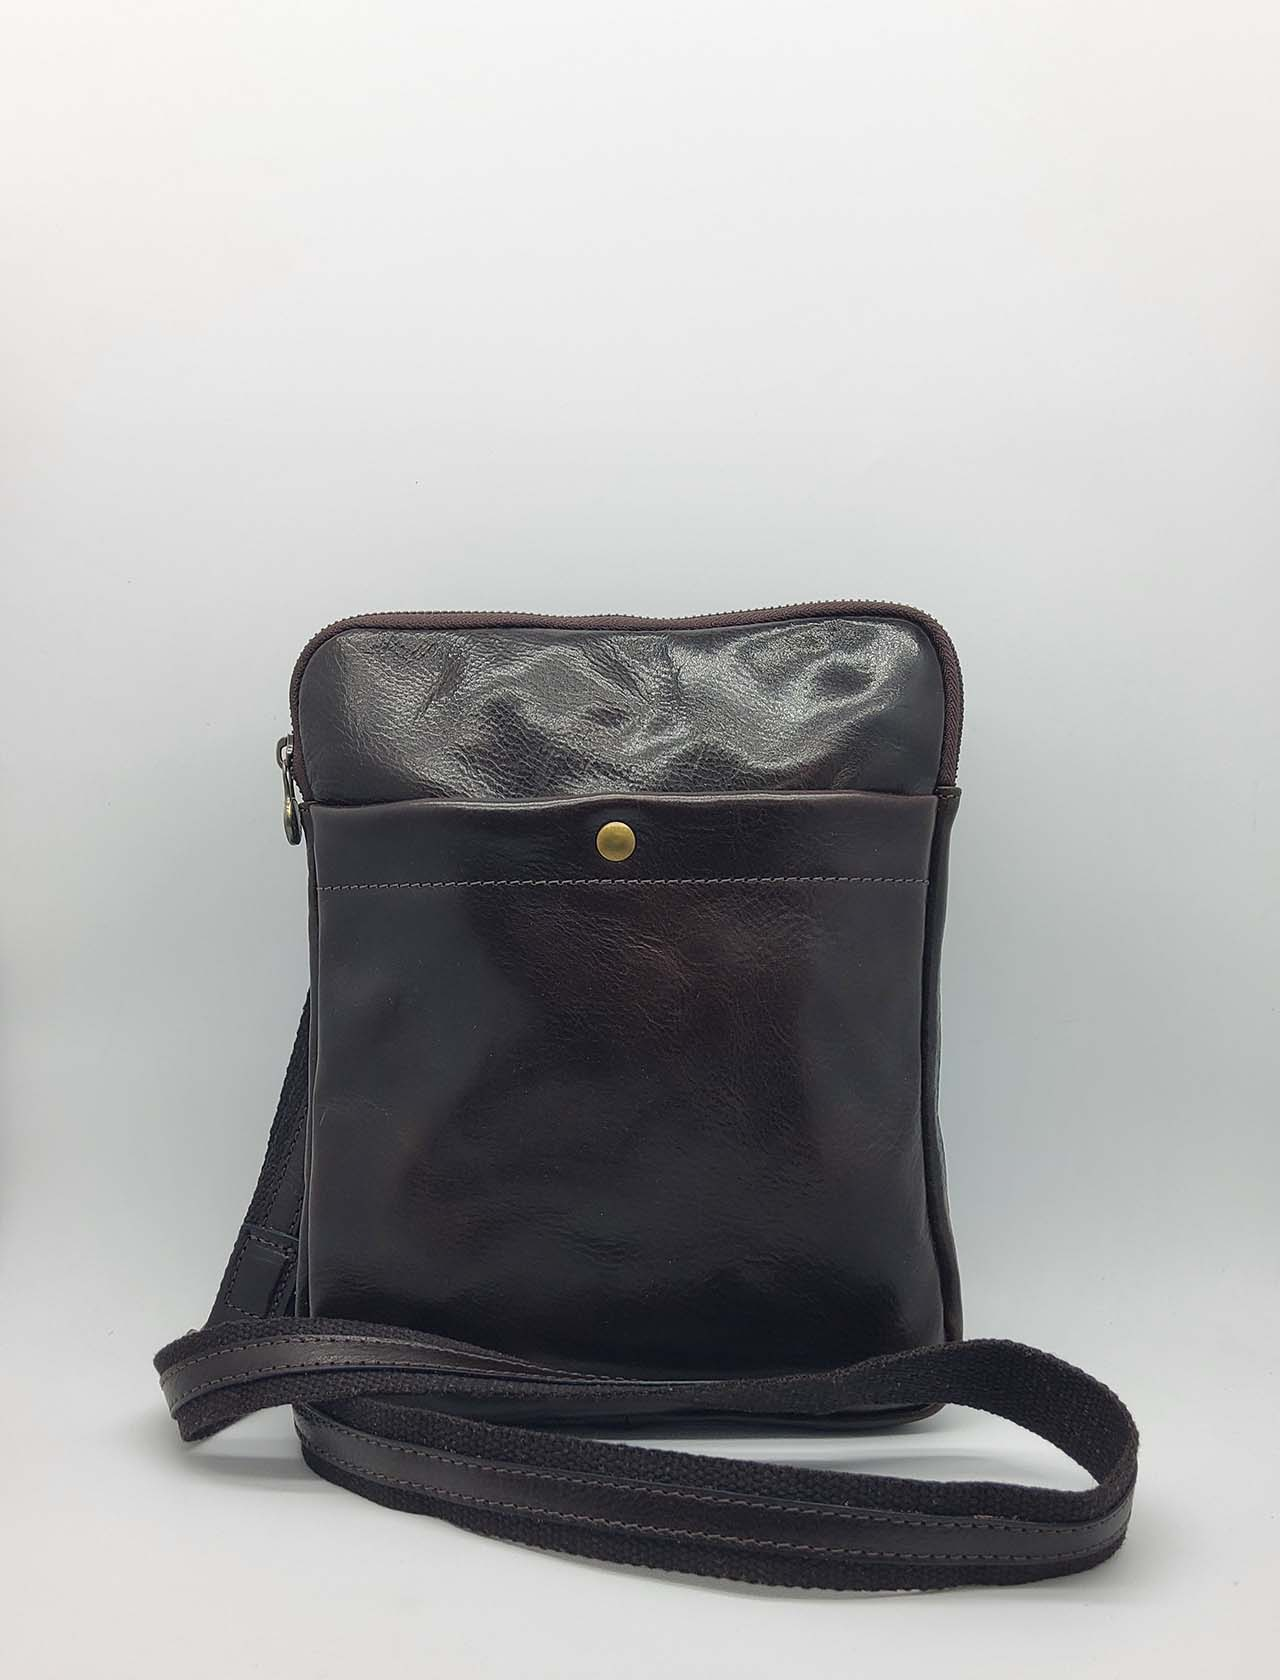 Men's Accessories Small Bag in Dark Brown Leather with Shoulder Strap and Zip Spatarella   Bags and backpacks   PEU0201013